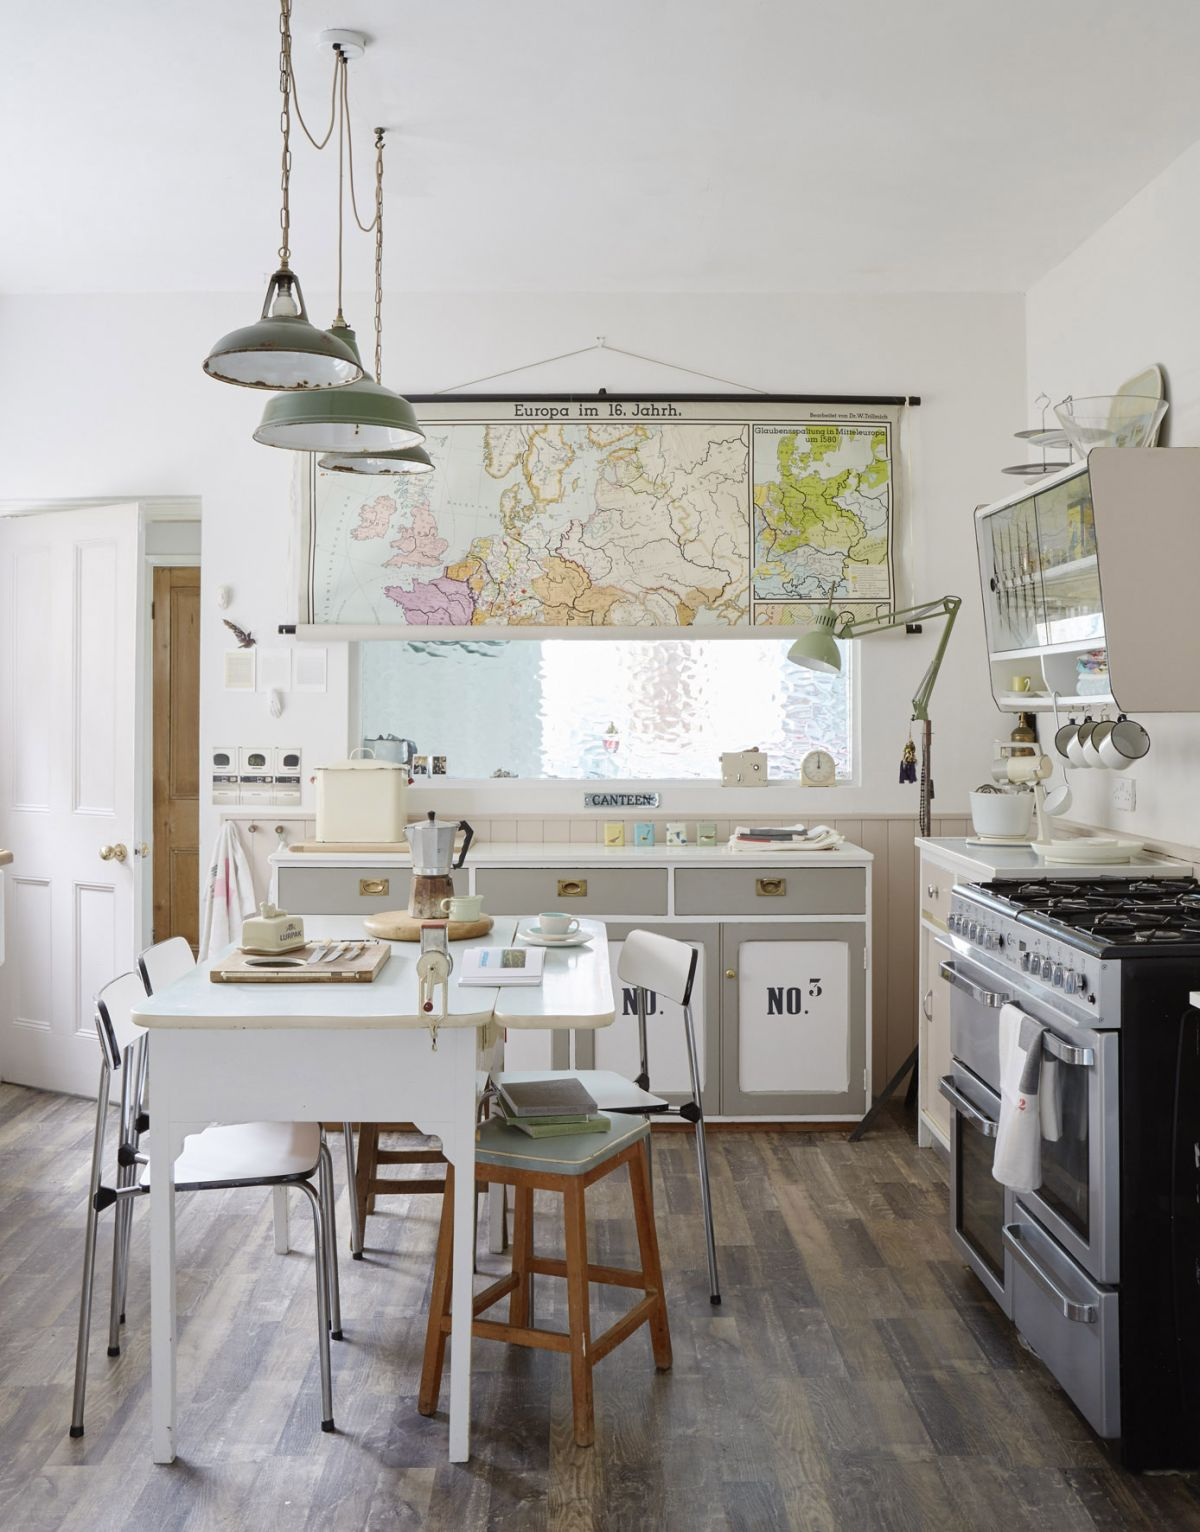 Kitchen blind ideas: 9 ways to stylishly dress your windows